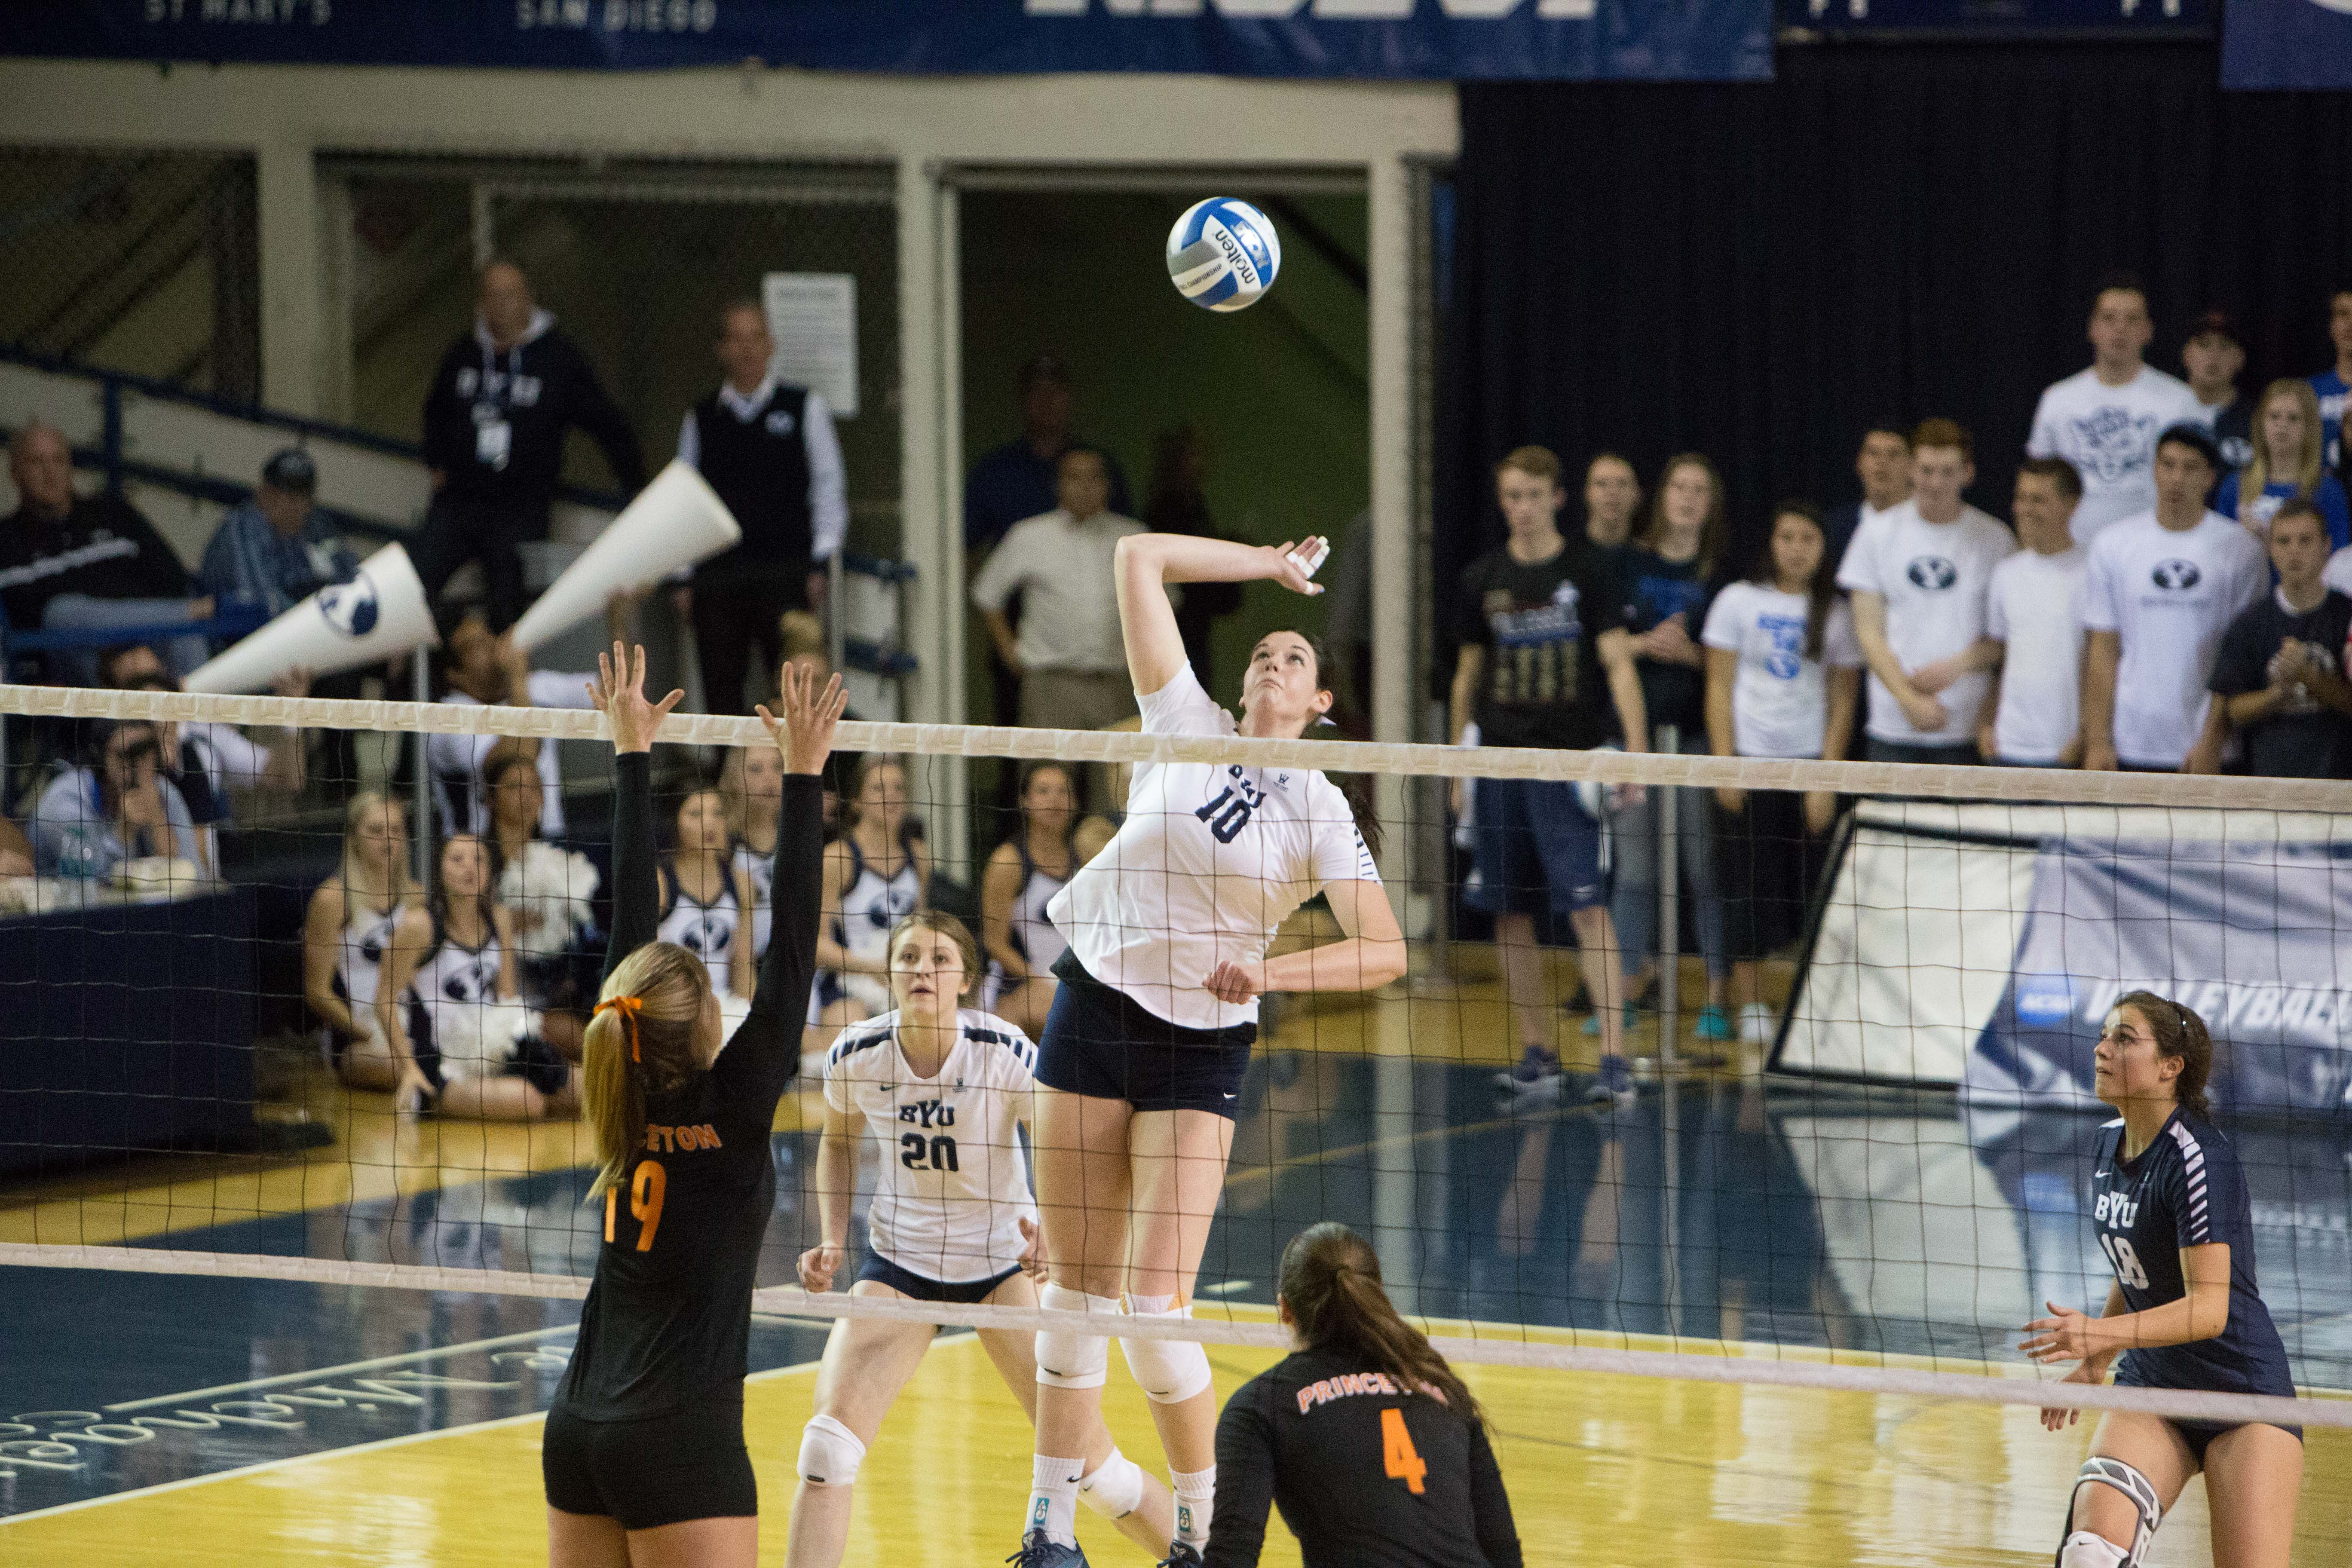 Amy Boswell spikes the ball against Princeton. Boswell and the Cougars swept the Tigers to advance in the NCAA tournament. (Gianluca Cuestas)